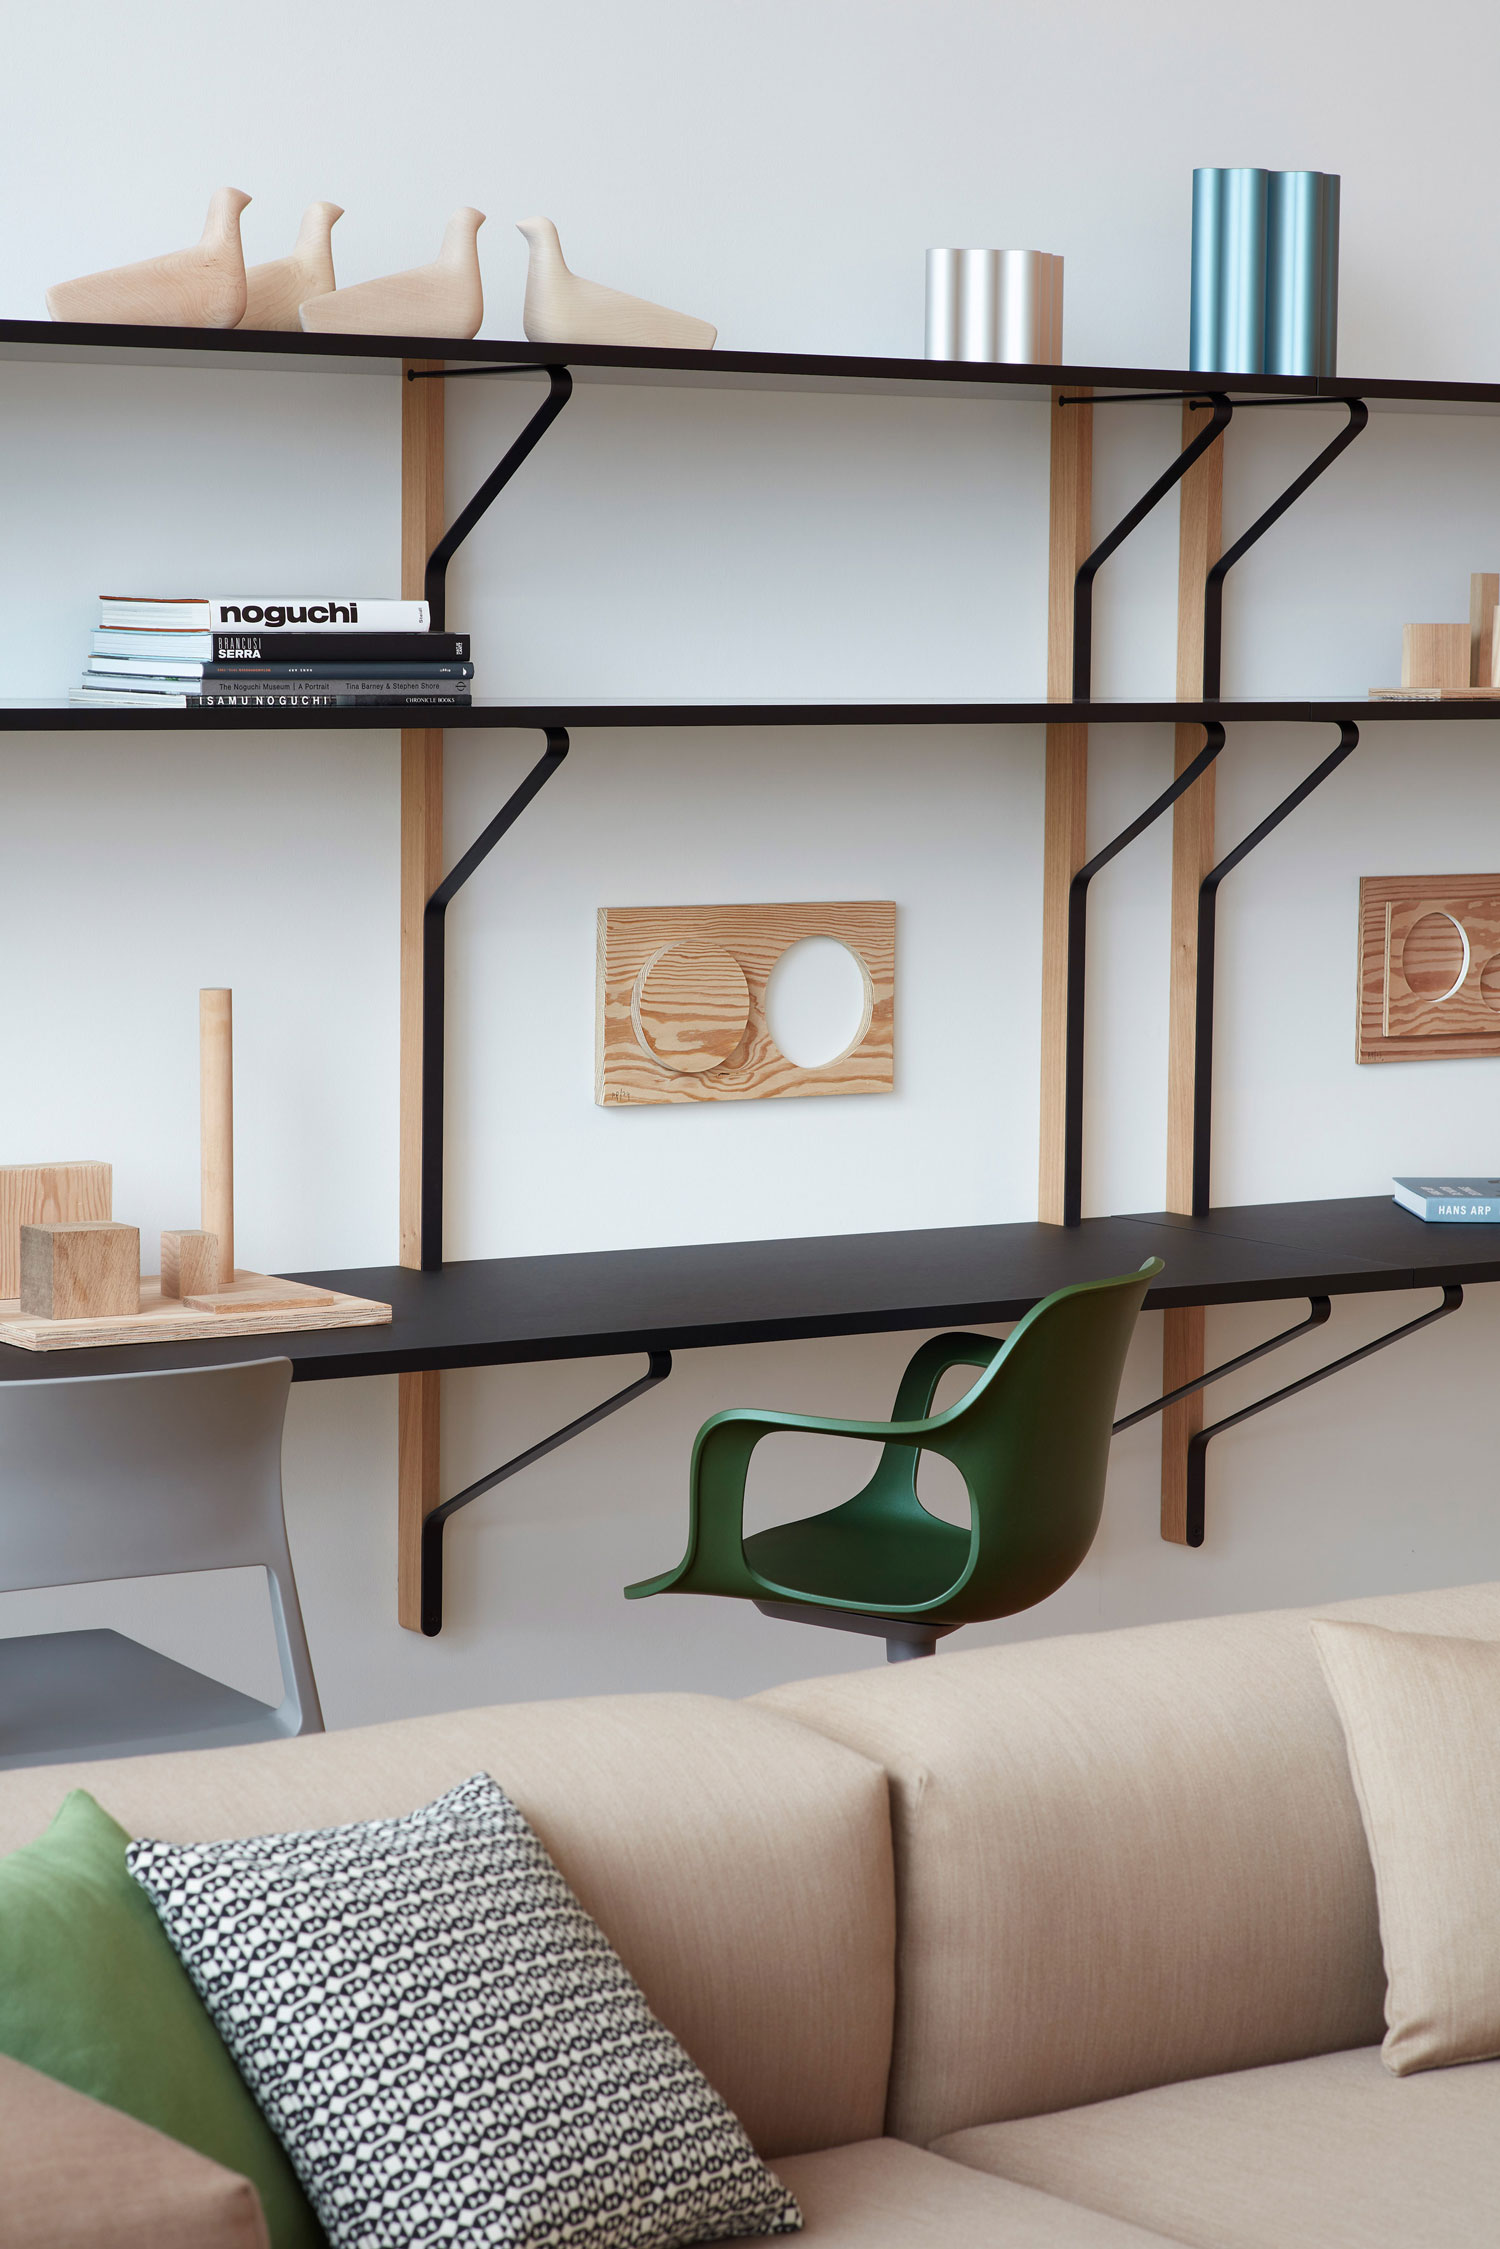 jasper morrison 39 s installation at the vitrahaus yellowtrace. Black Bedroom Furniture Sets. Home Design Ideas